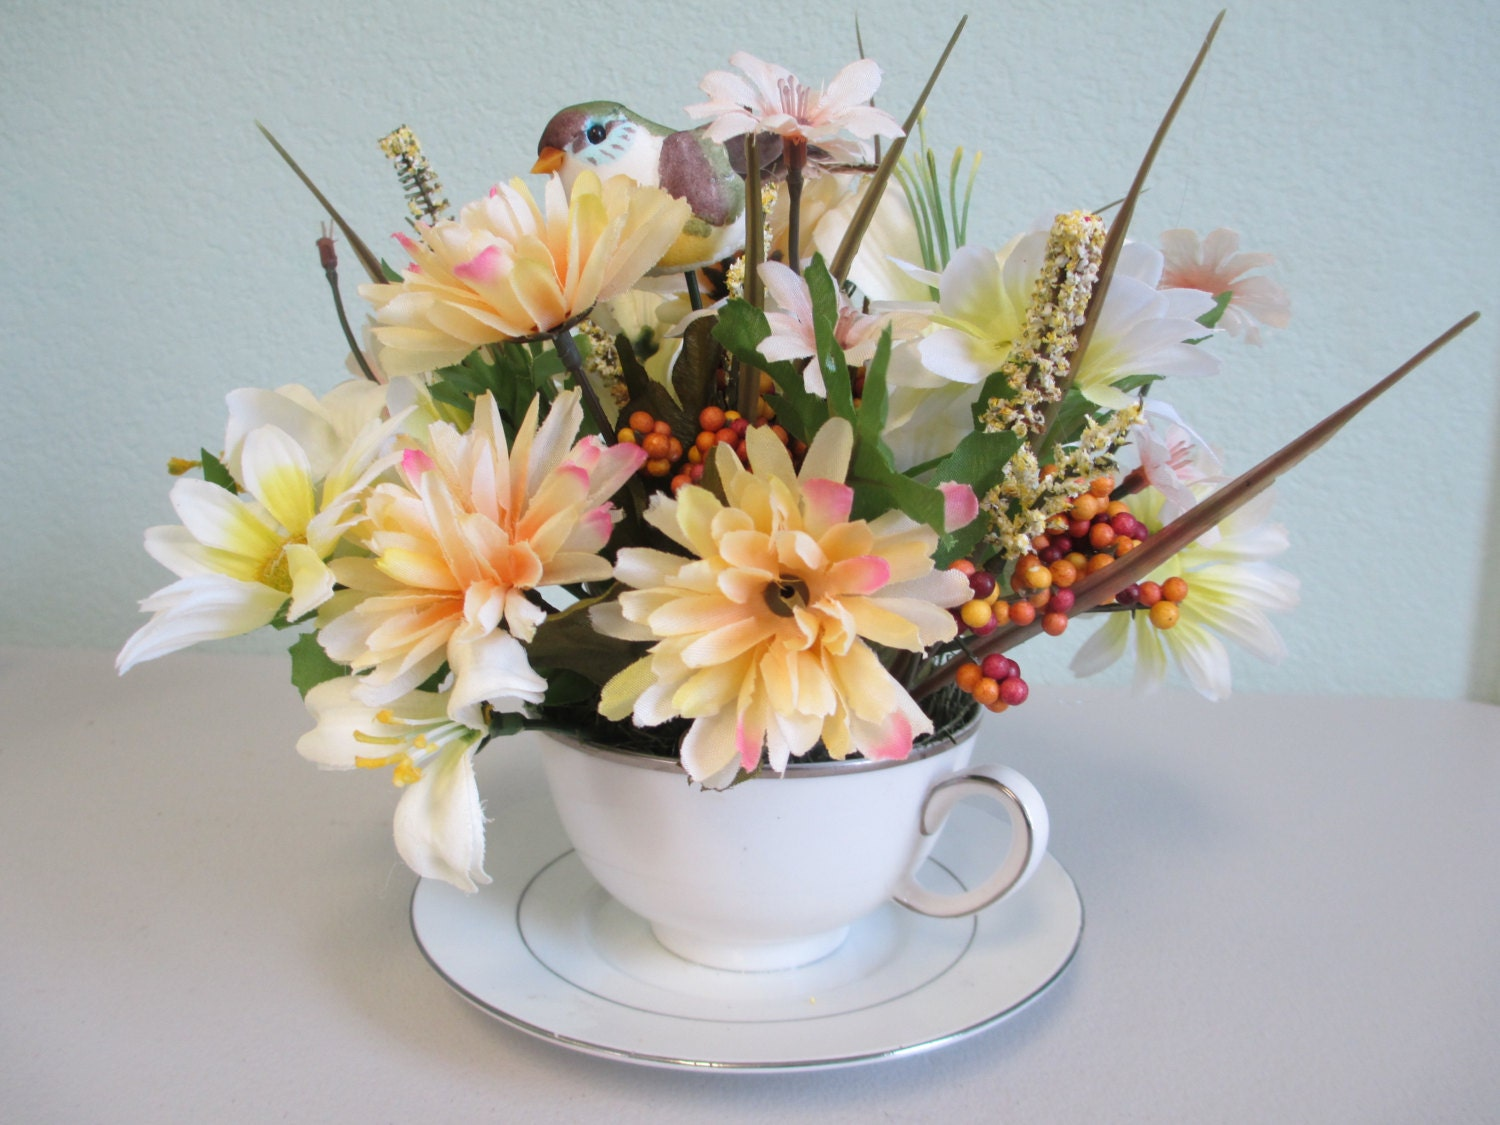 Tea cup spring and summer silkflower arrangement ooak